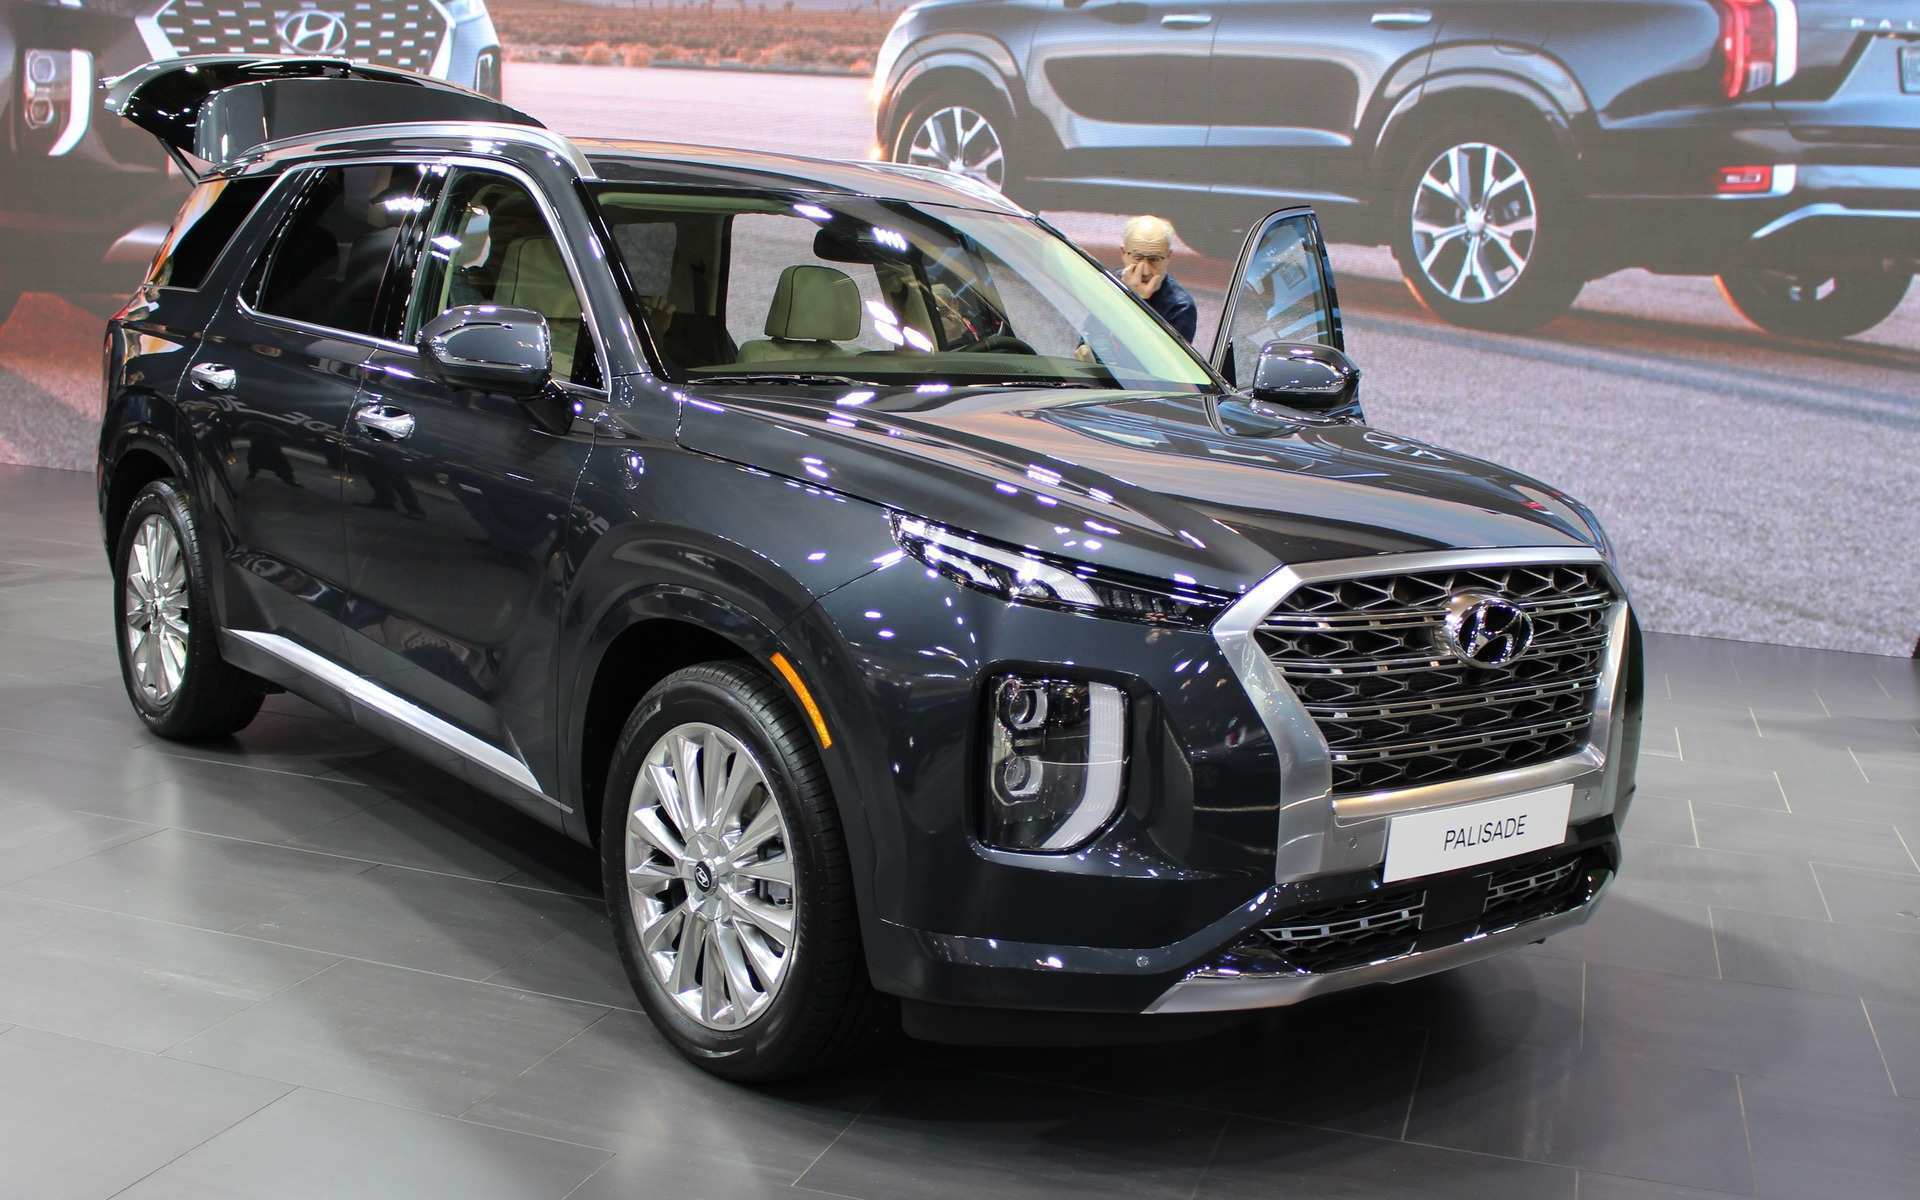 43 New When Will The 2020 Hyundai Palisade Be Available Price And Release Date